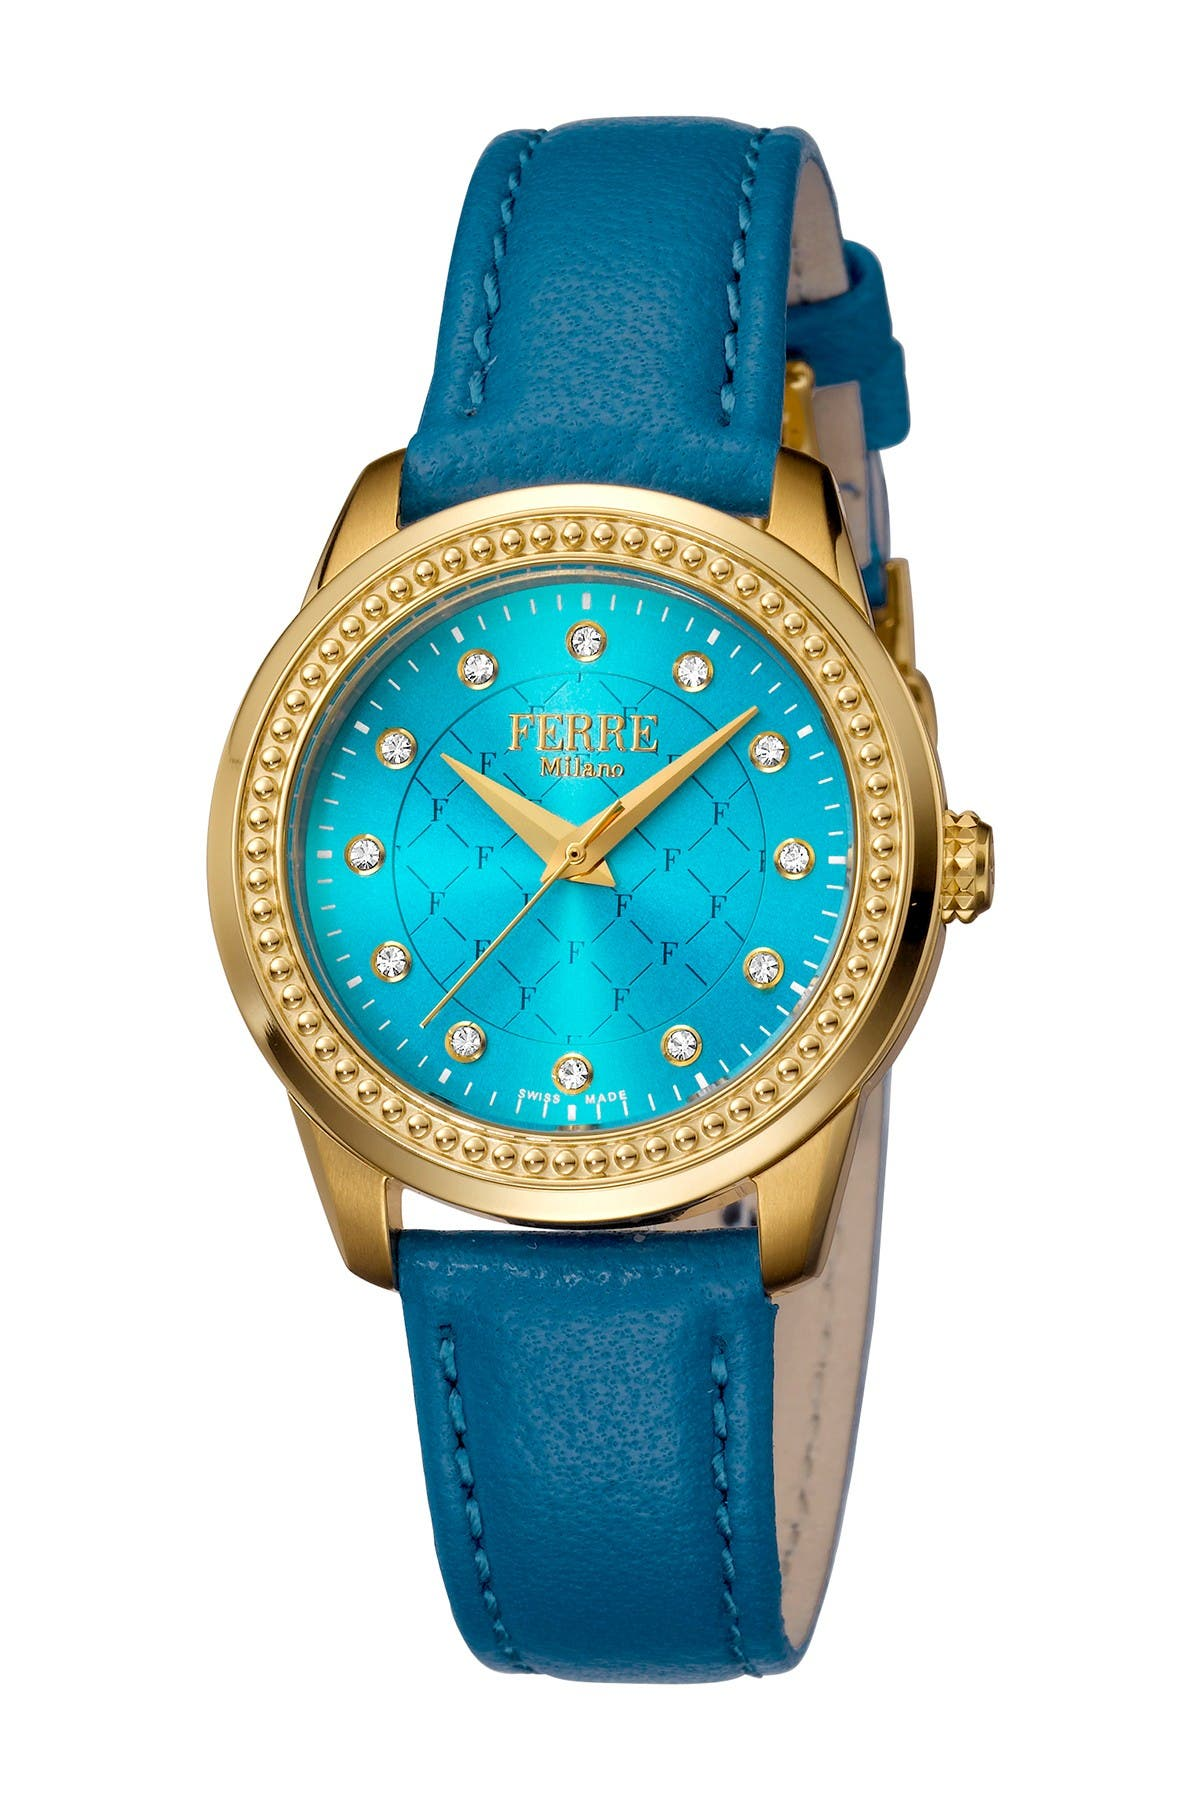 Image of Ferre Milano Women's Leather & Stainless Steel Watch, 32mm